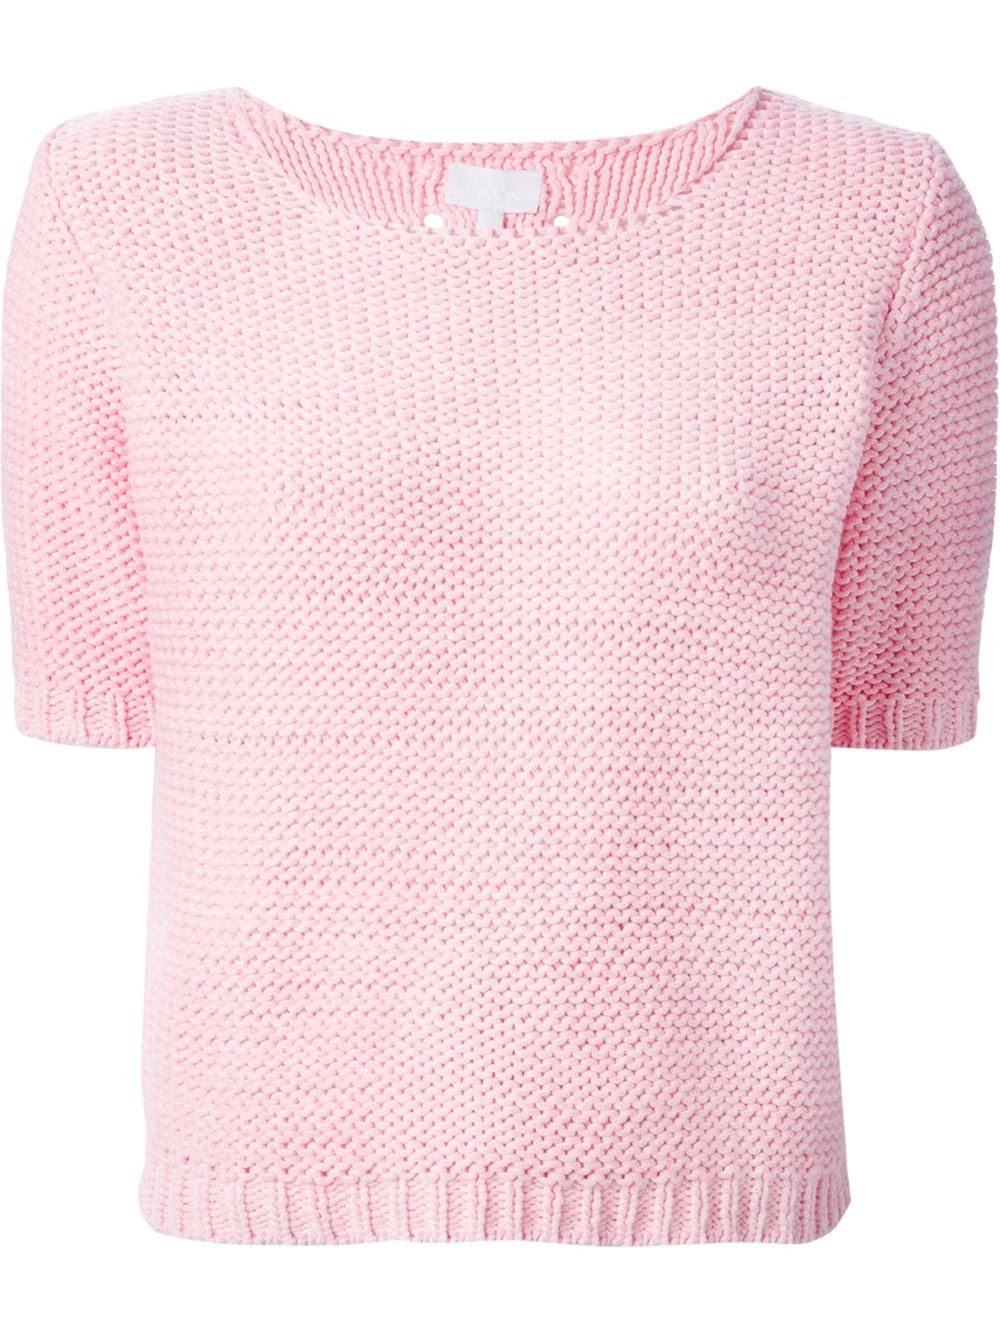 Lala berlin Short Sleeve Sweater in Pink | Lyst